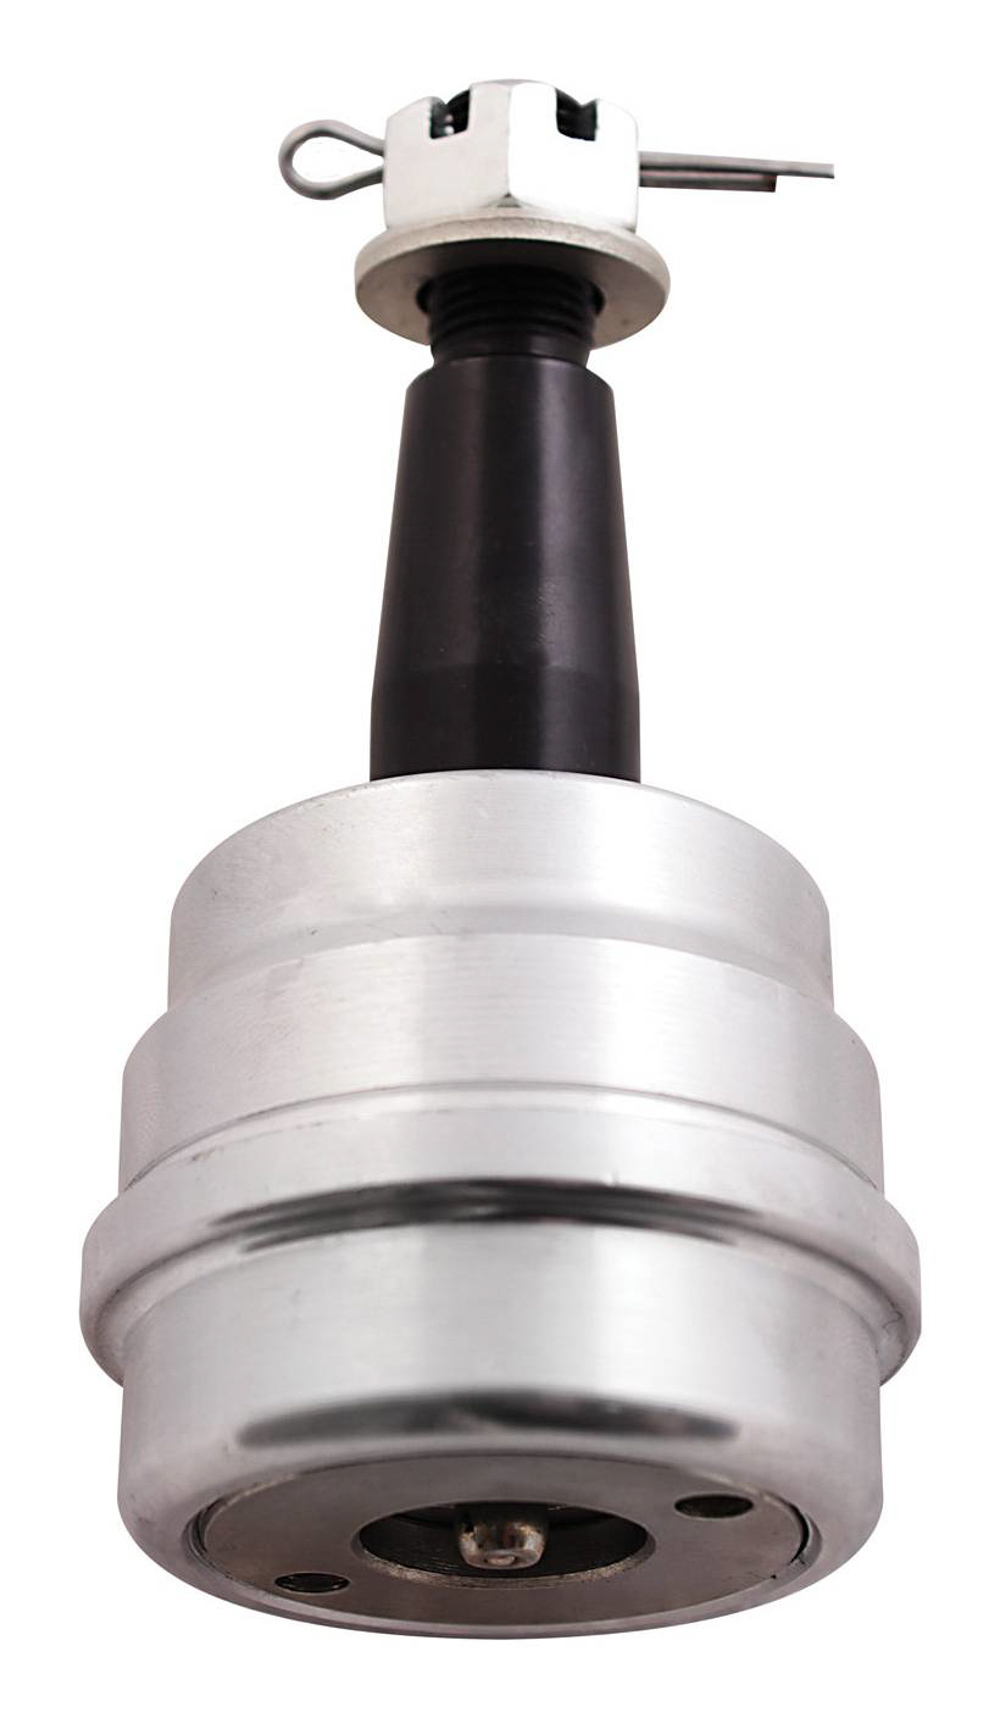 QA1 1210-209P Ball Joint, Greasable, Lower, Press-In, 2.000 in/ft Taper, 4.141 in Stud, 1/2-20 in Thread, Steel, Each